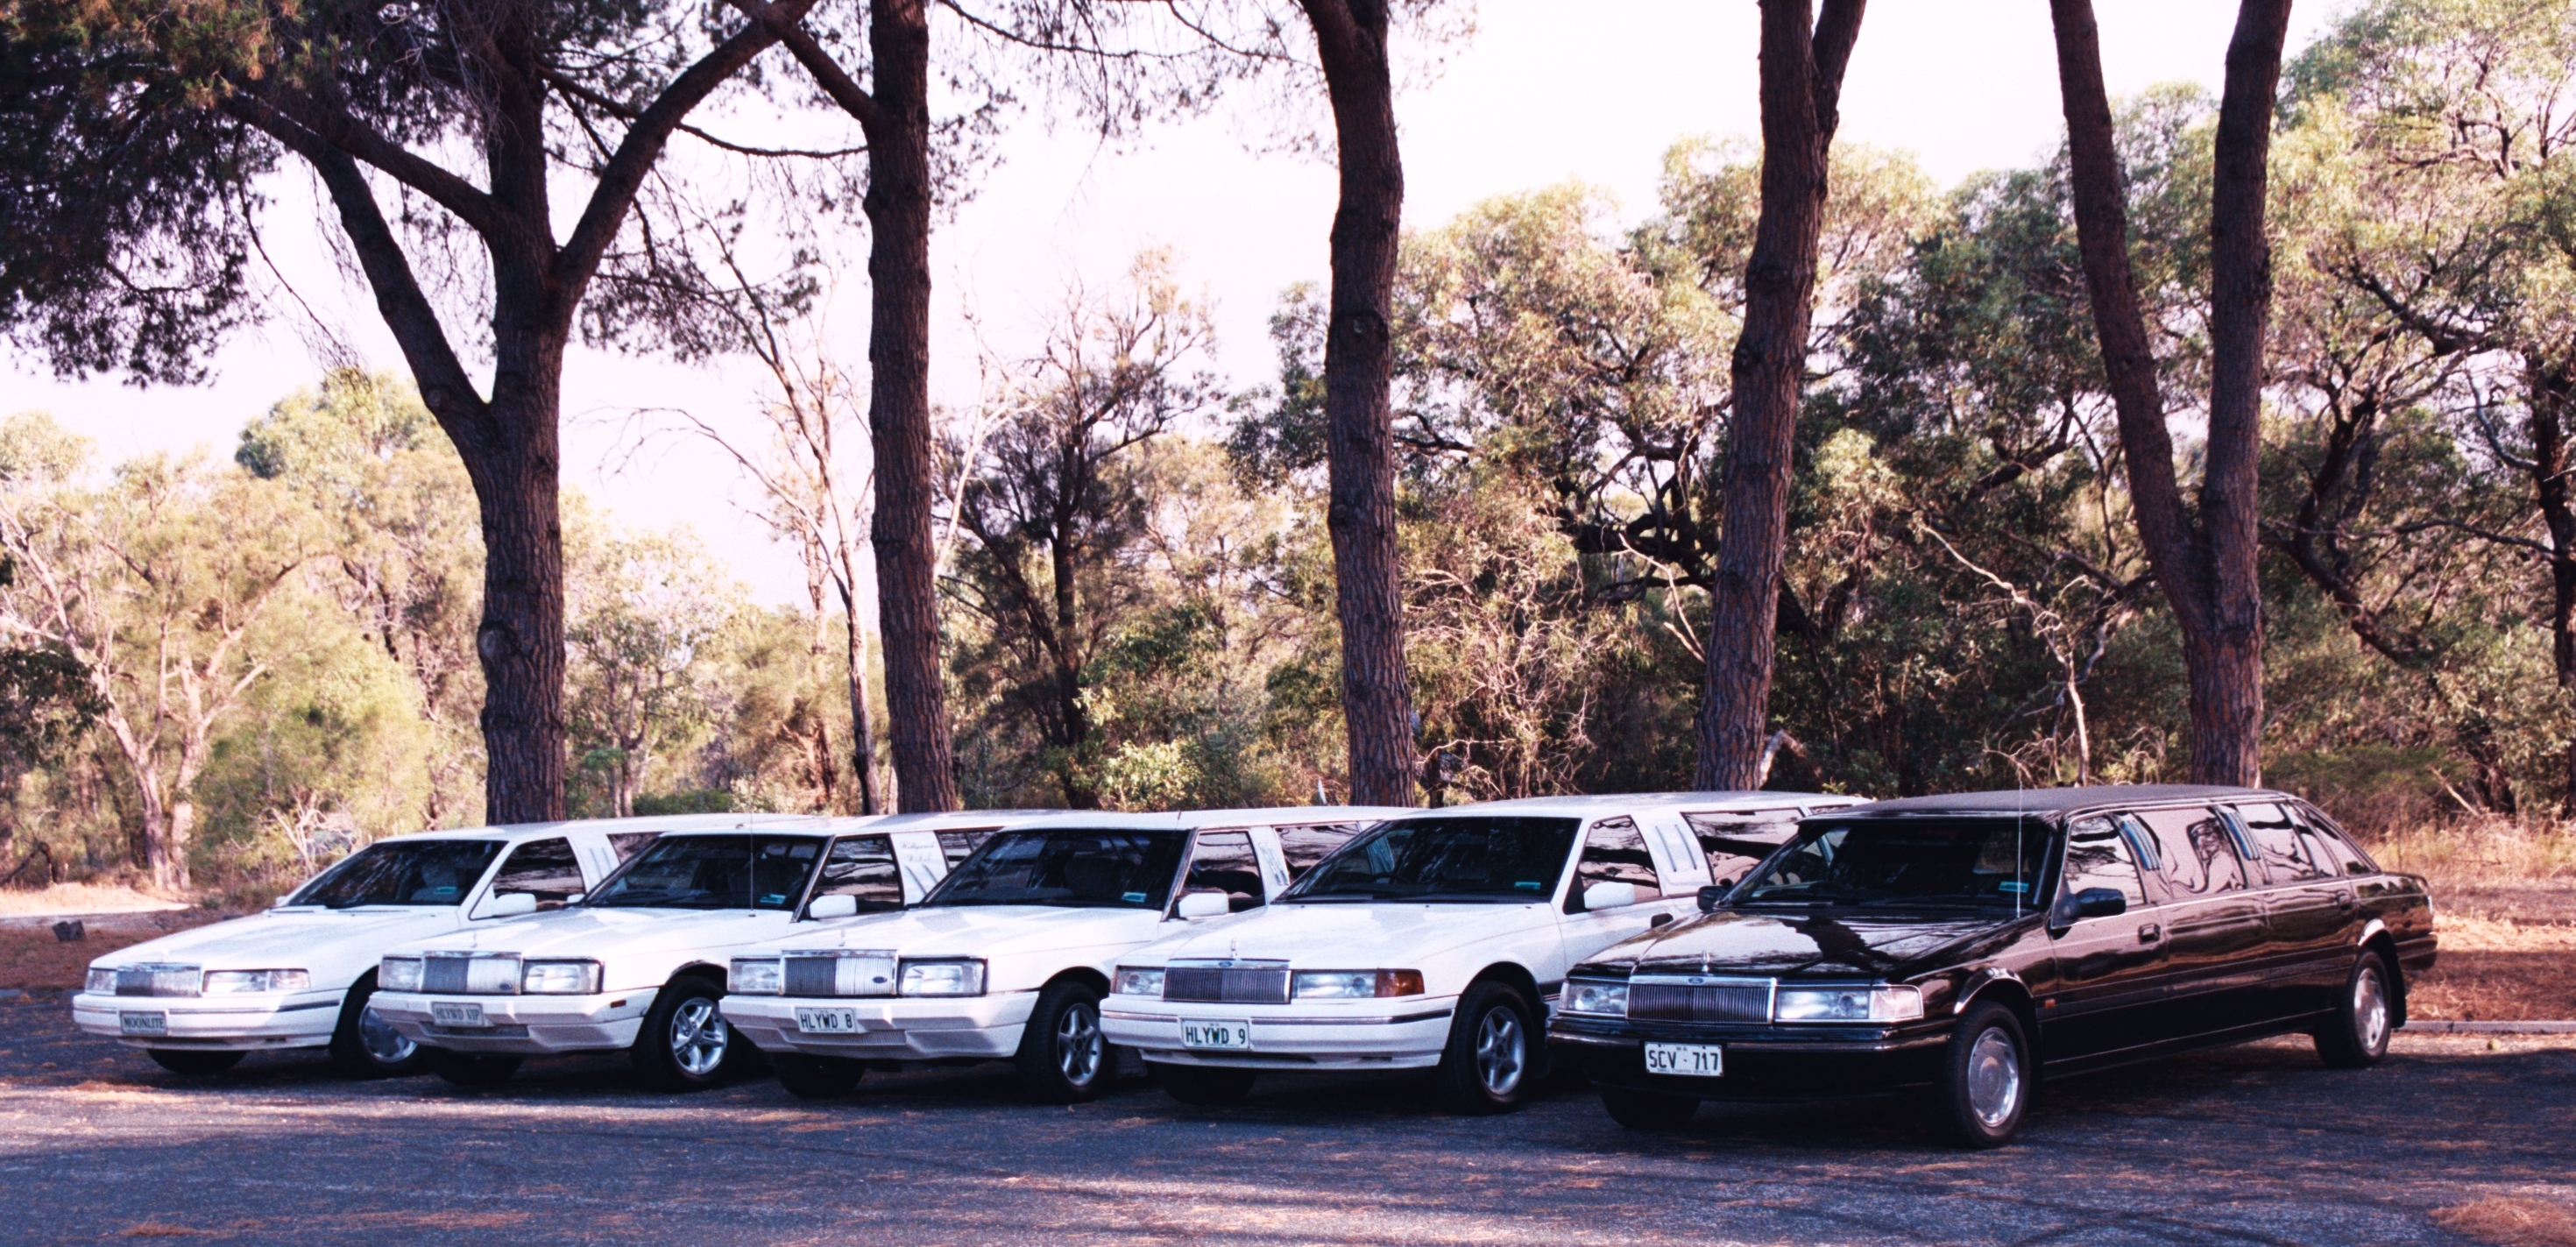 Hollywood VIP Limousines - Accommodation Broken Hill